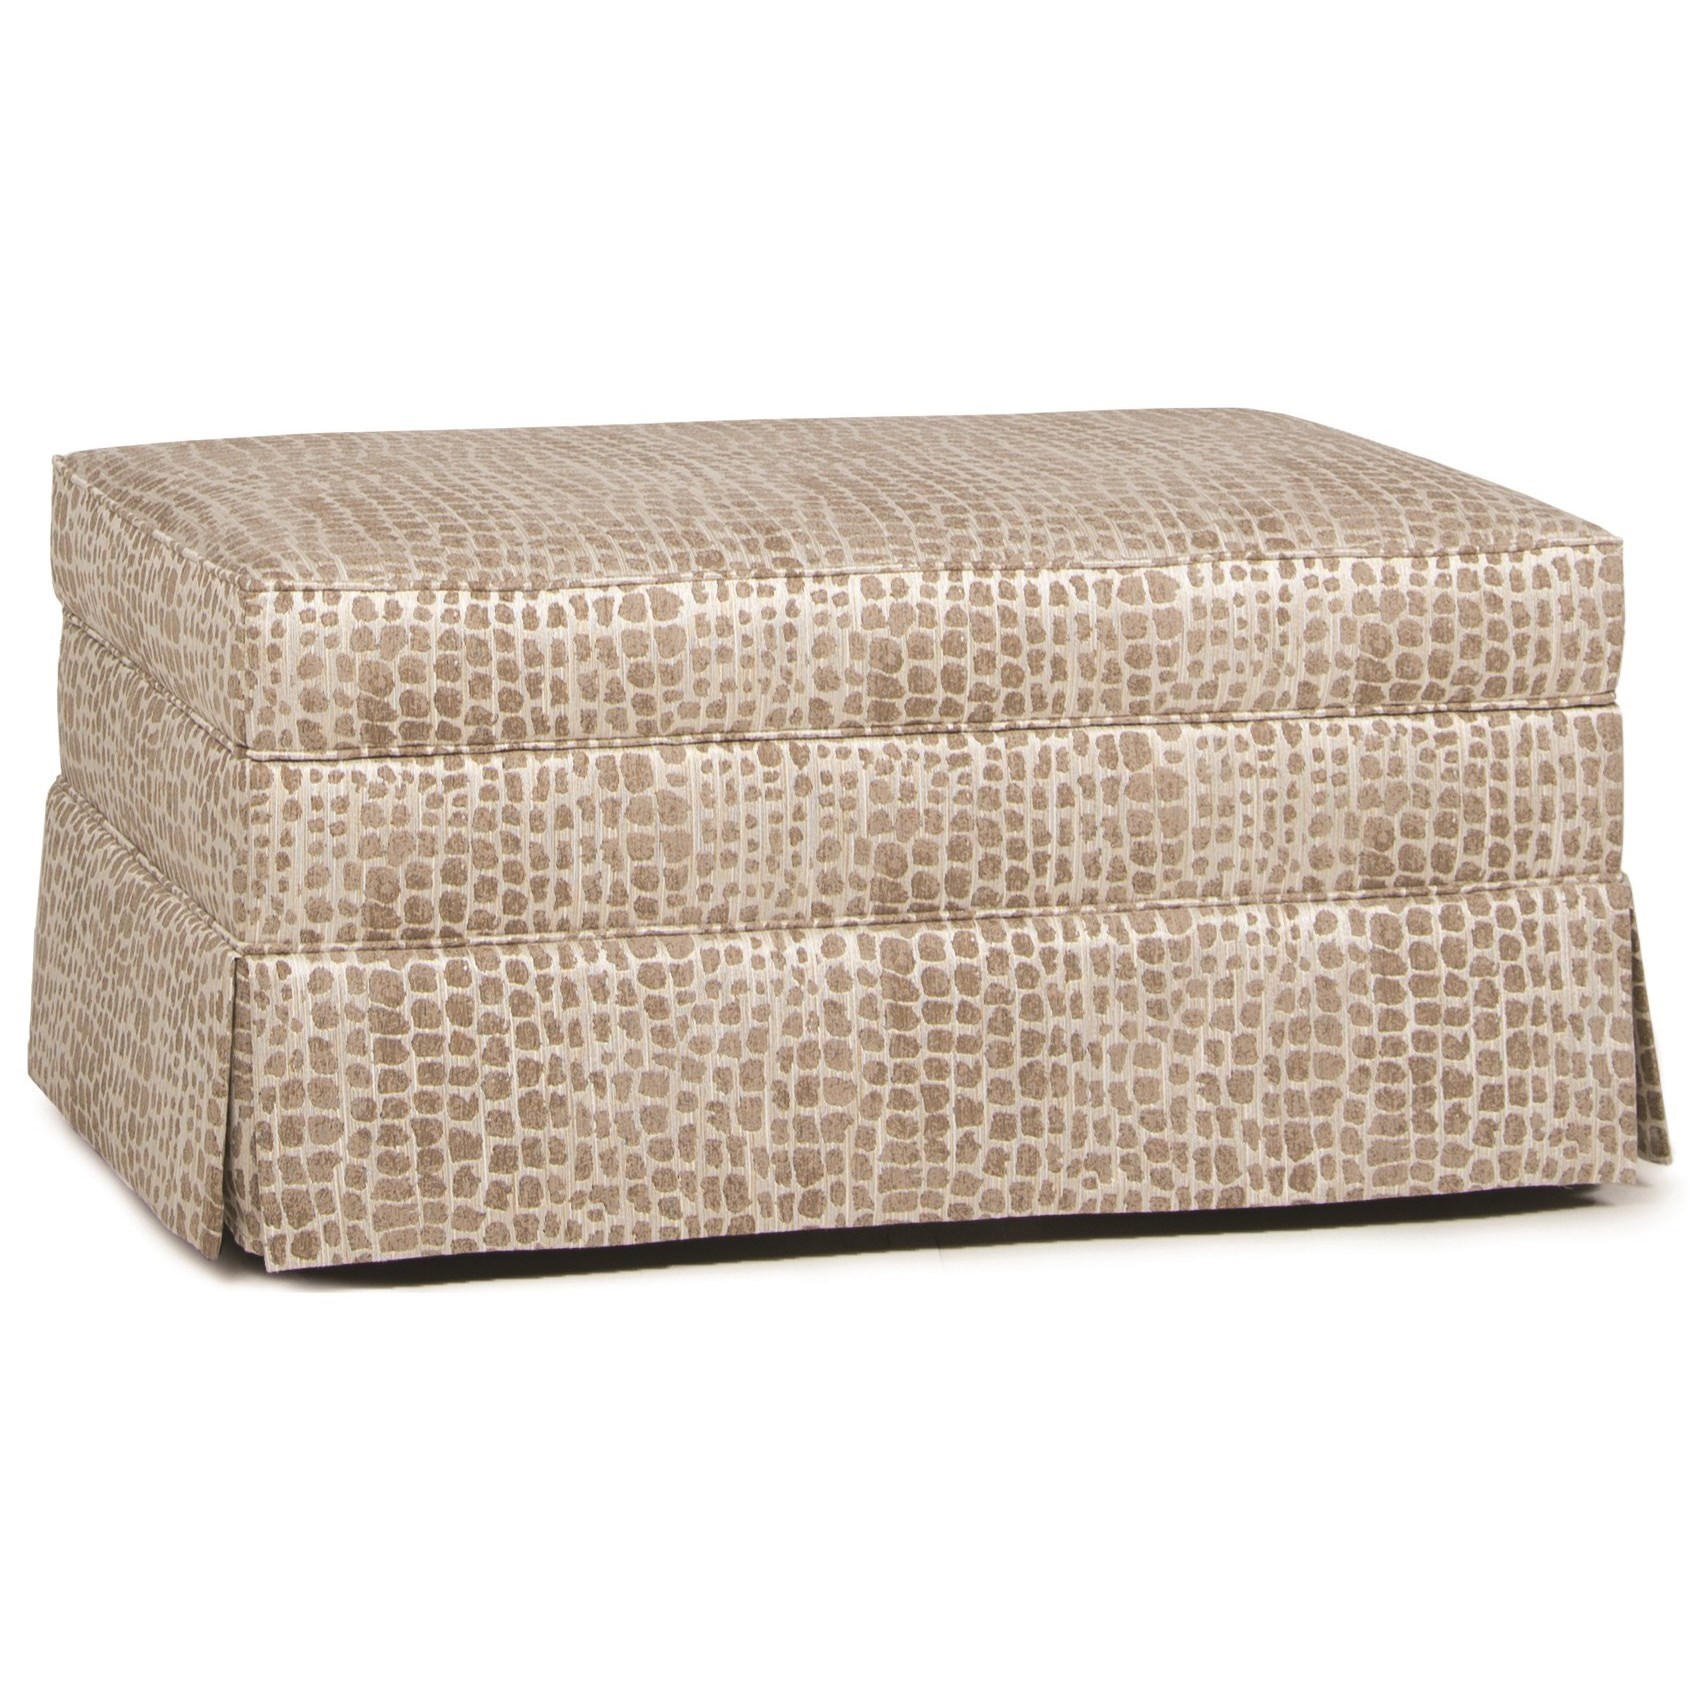 Storage Ottoman with Skirt and Hidden Casters